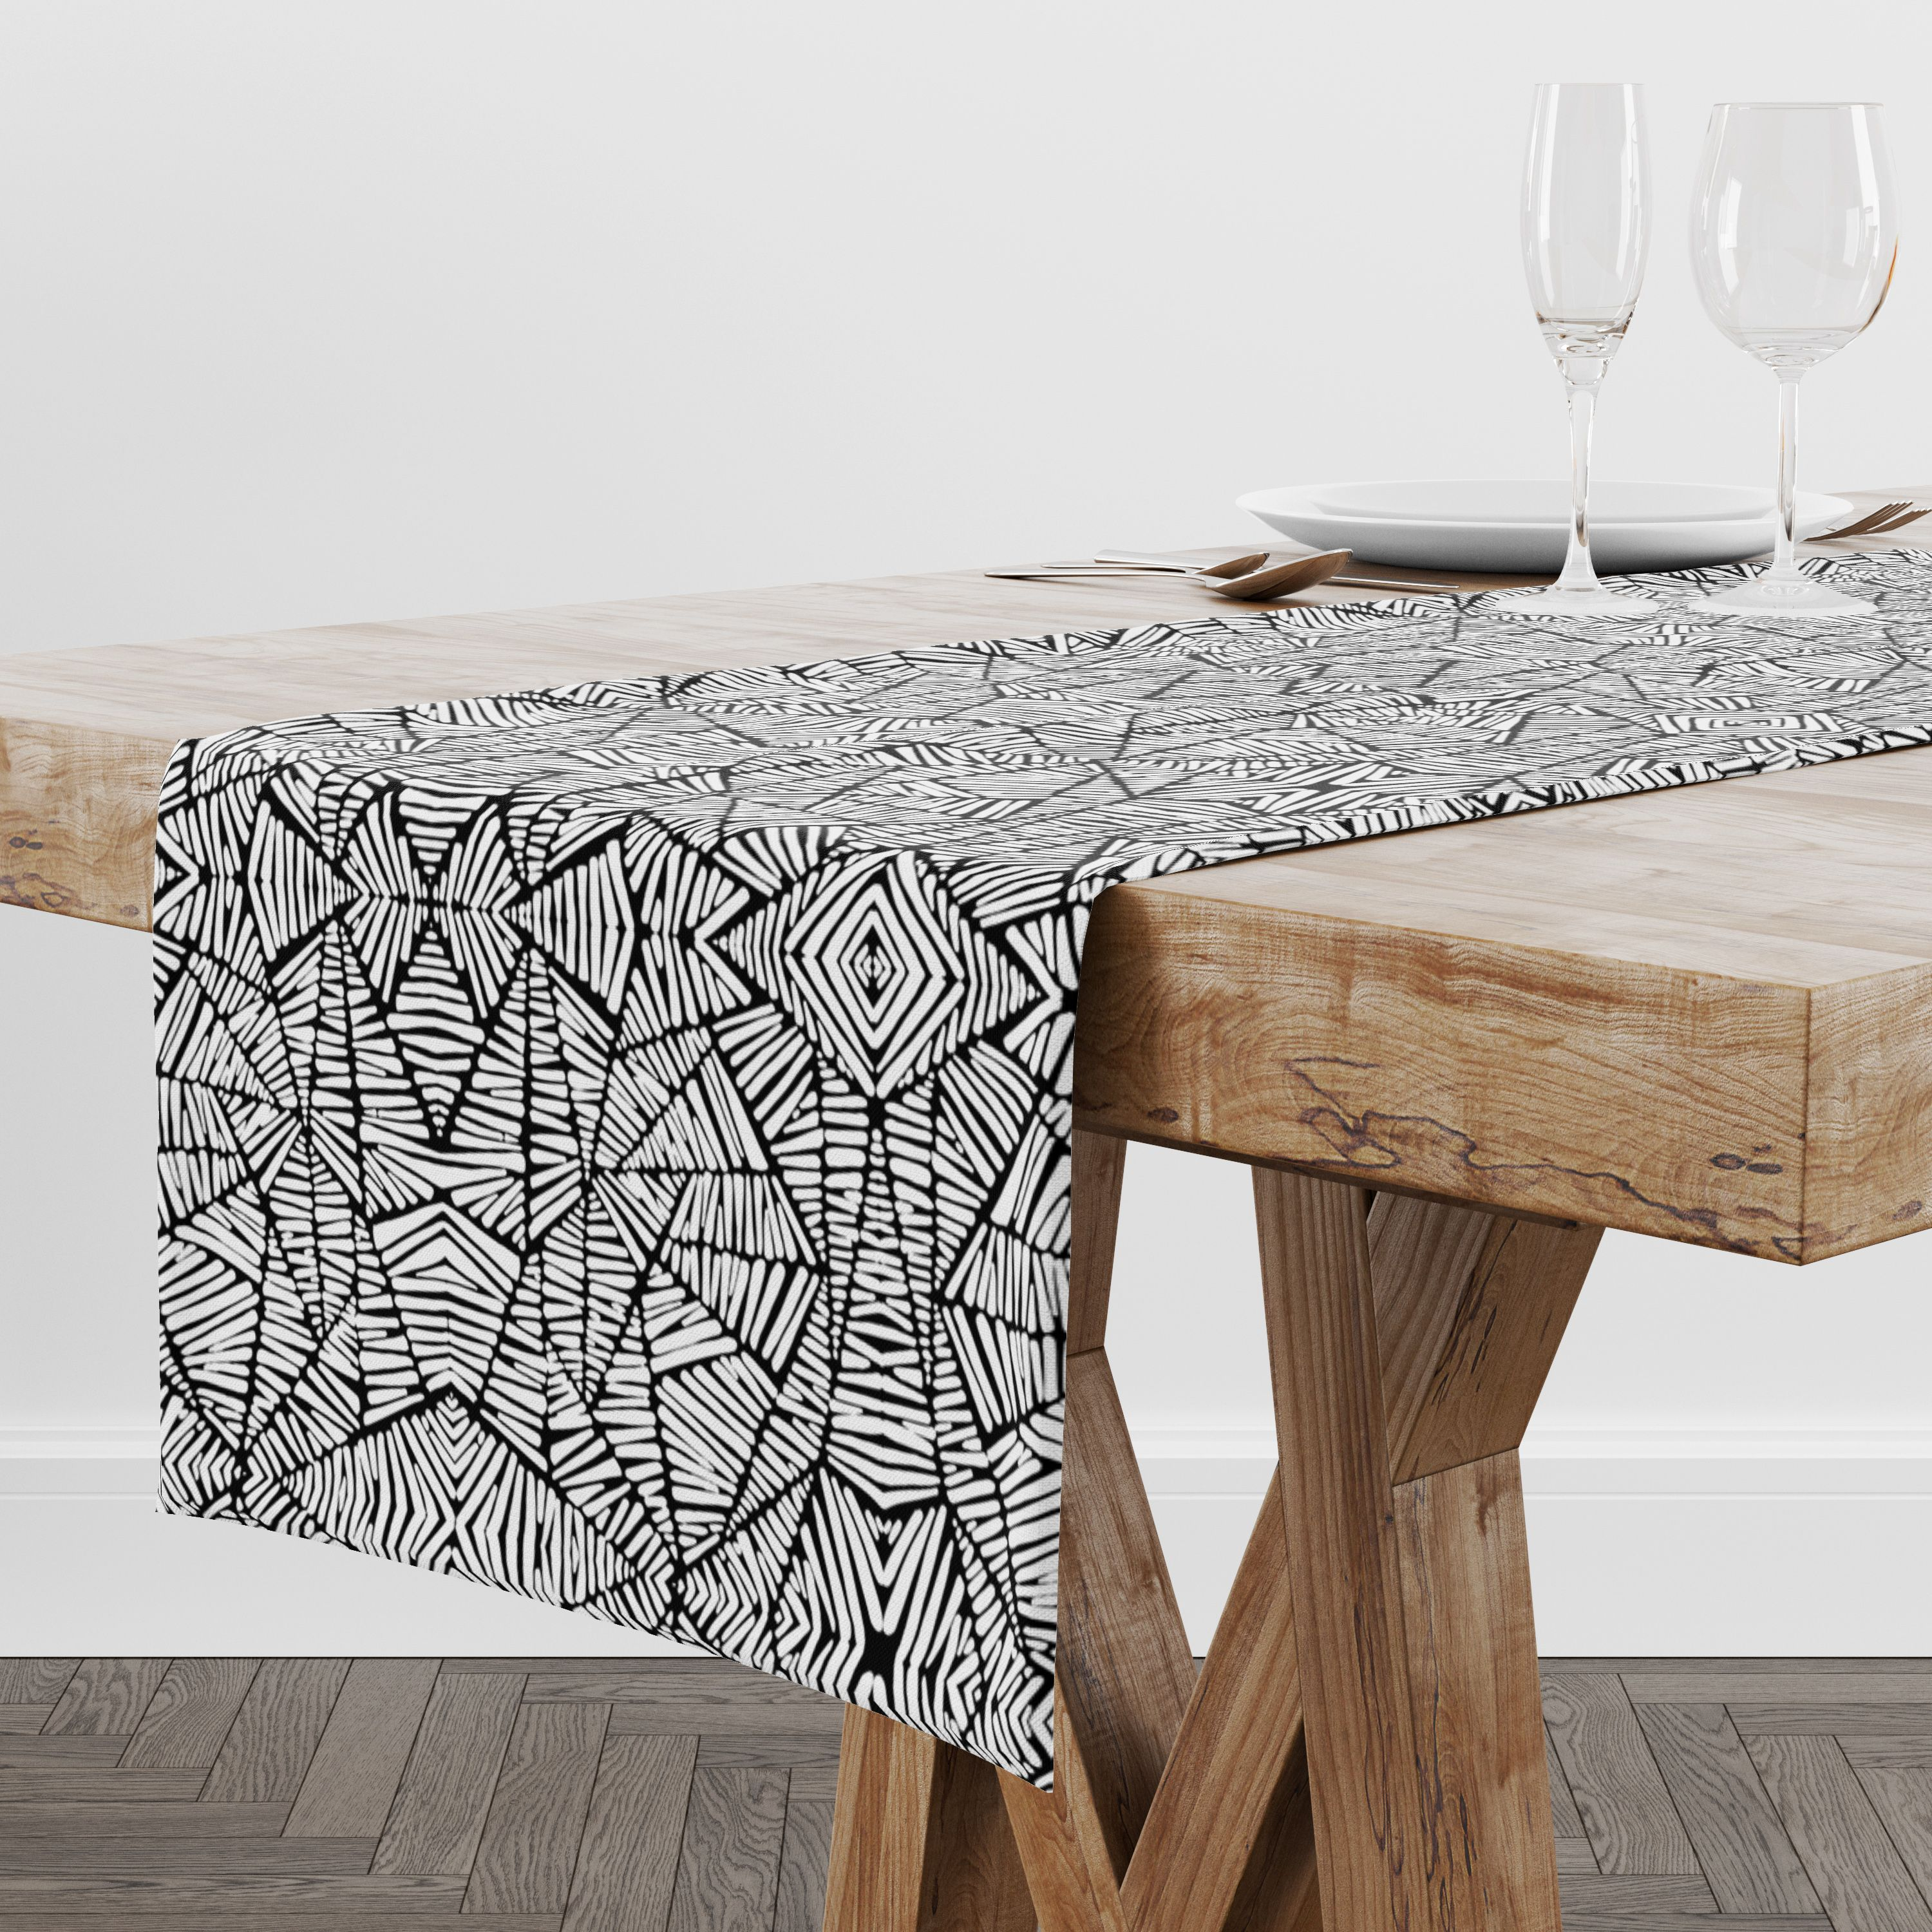 Rochelle Porter Design Teams Up With West Elm To Create a Chic Home Decor Line